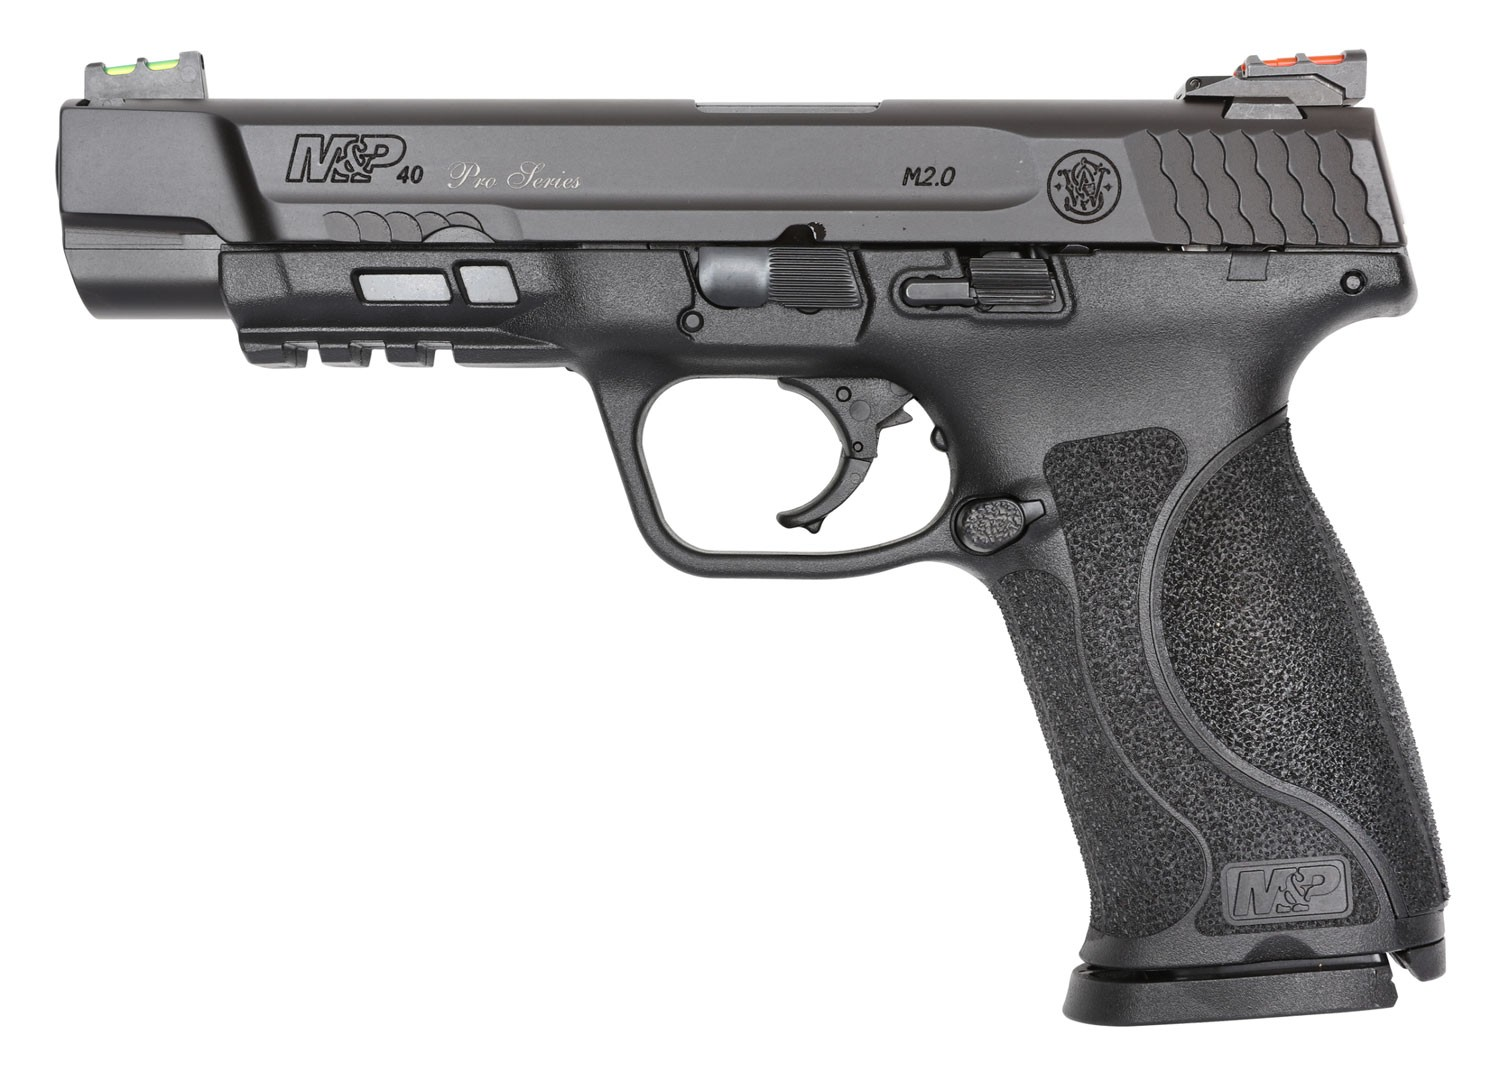 Smith & Wesson 11821 M&P 40 Performance Center M2.0 40 S&W 5in. 15+1 Black Armornite Stainless Steel Black Synthetic Grip